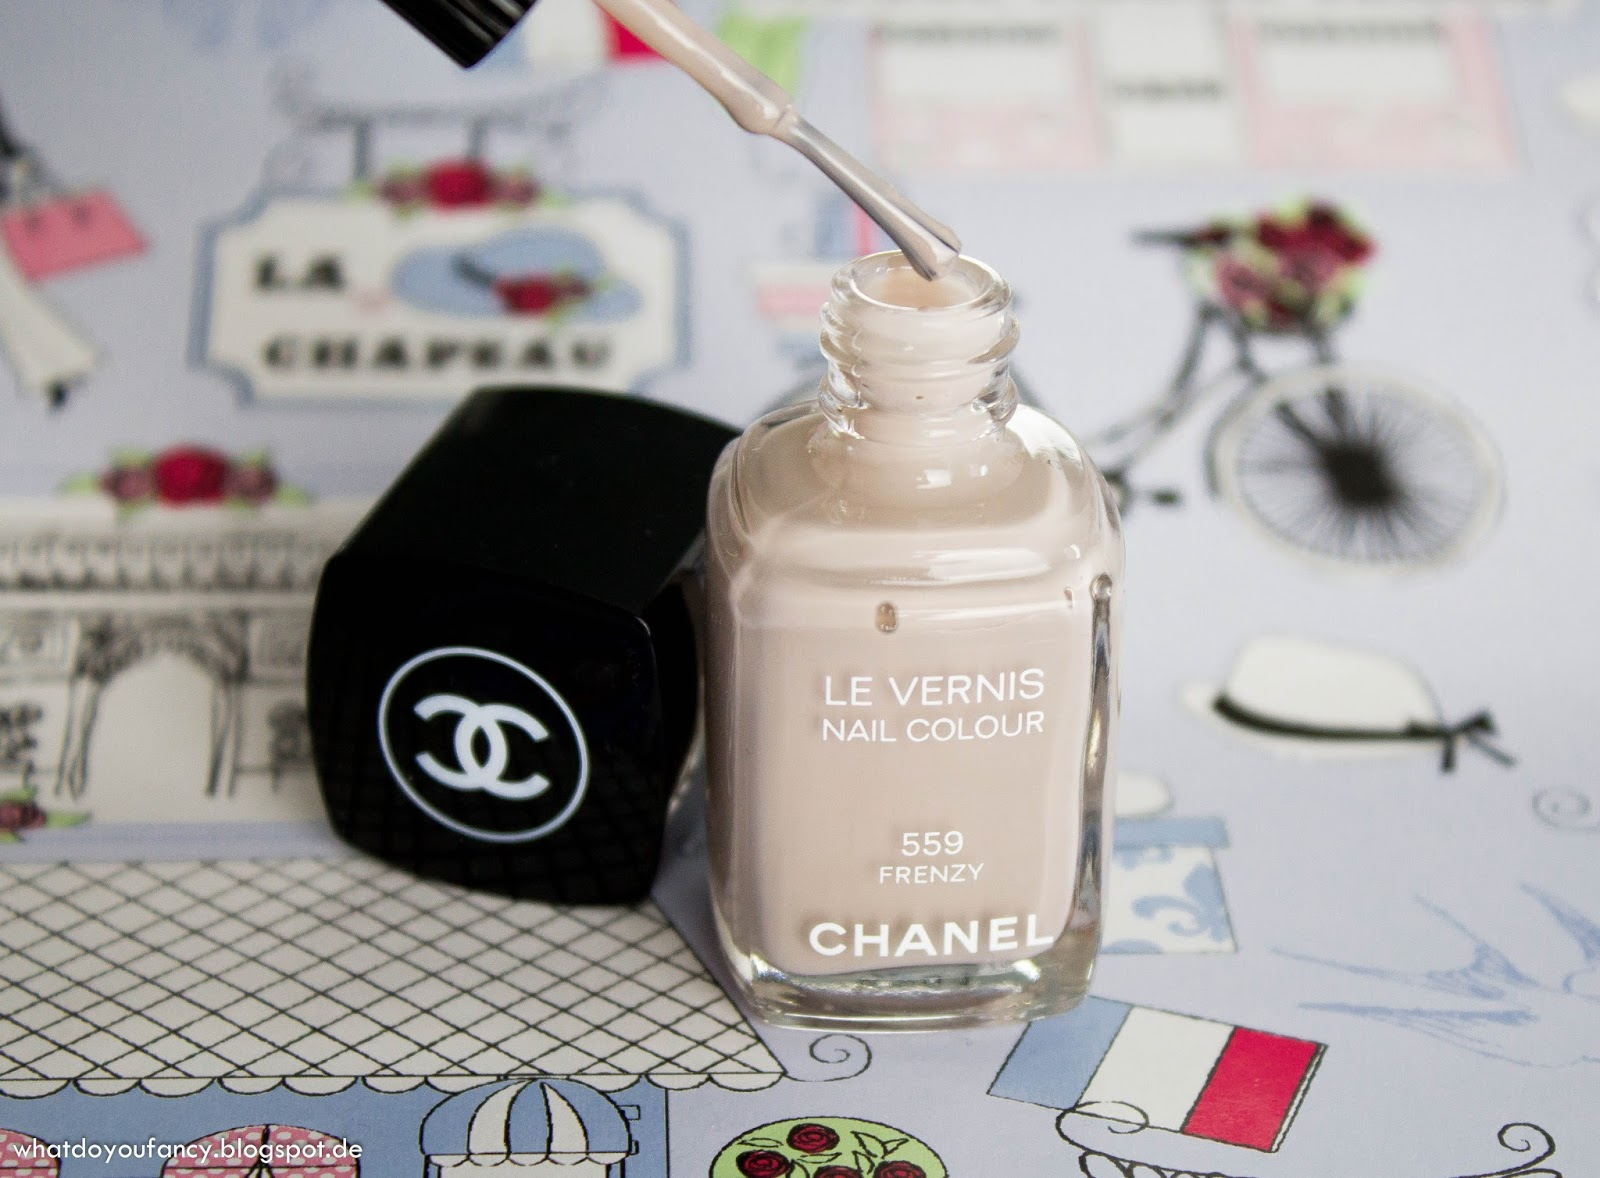 Chanel Le Vernis Nail Colour 559 Frenzy